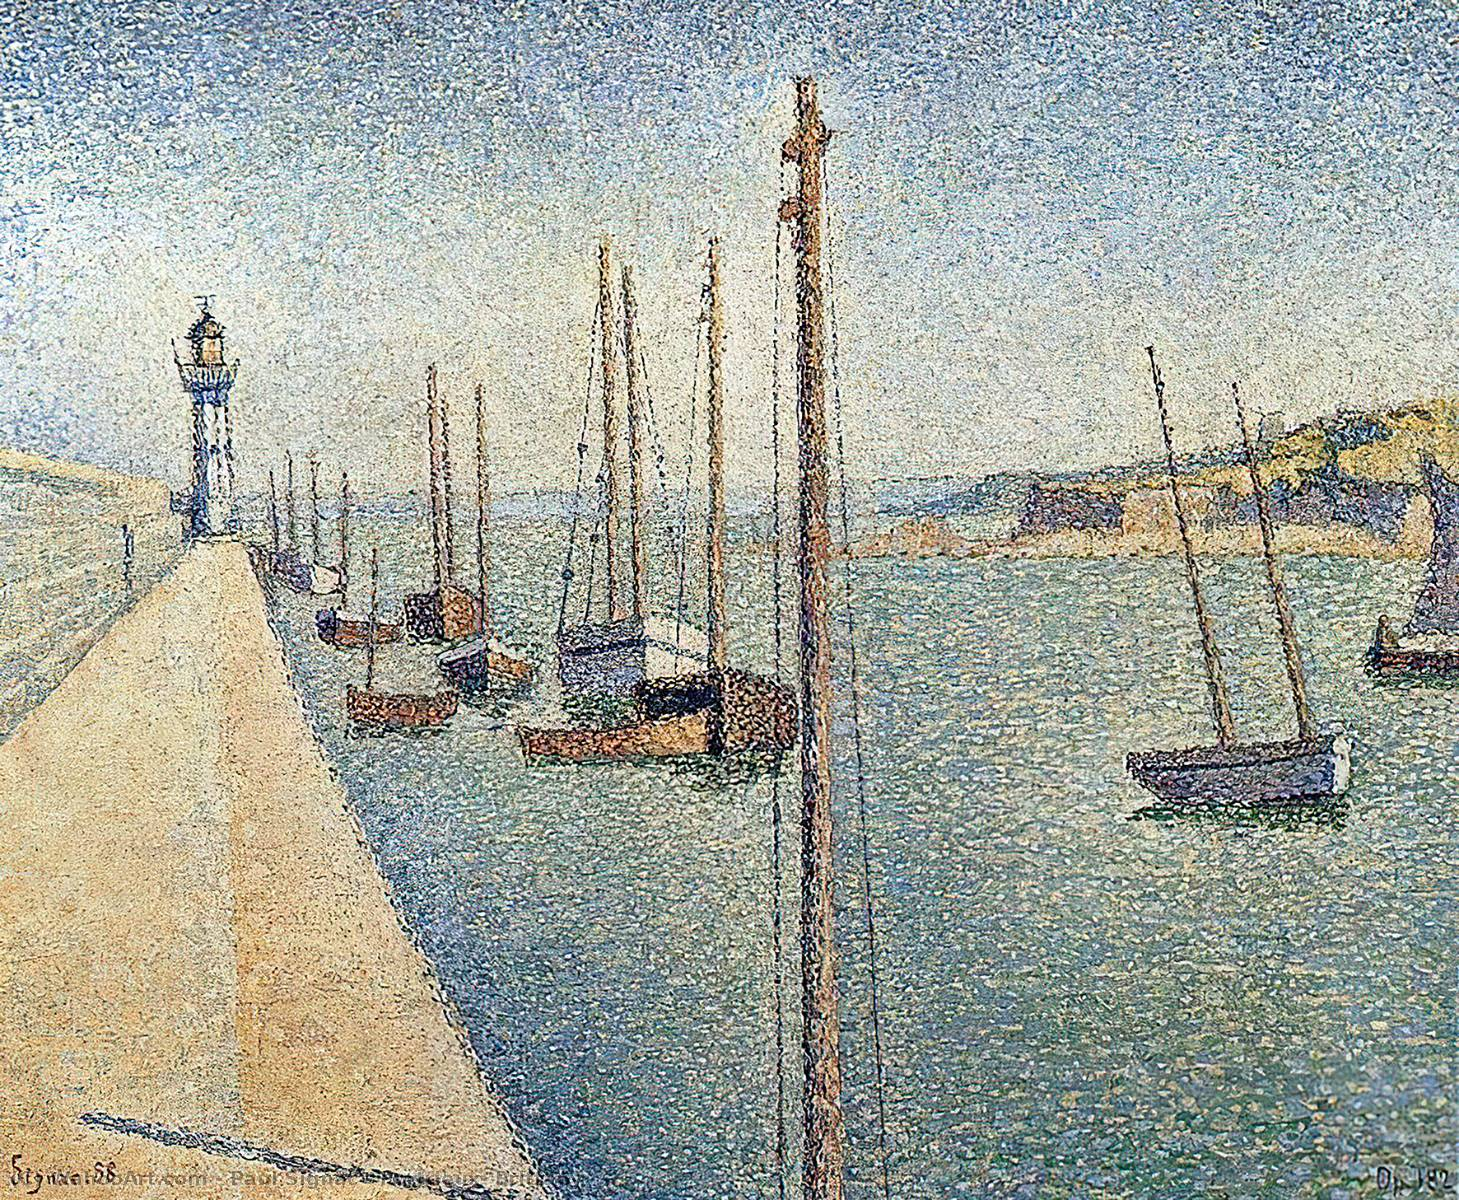 Order Paintings Reproductions | Portrieux, Brittany by Paul Signac | Most-Famous-Paintings.com